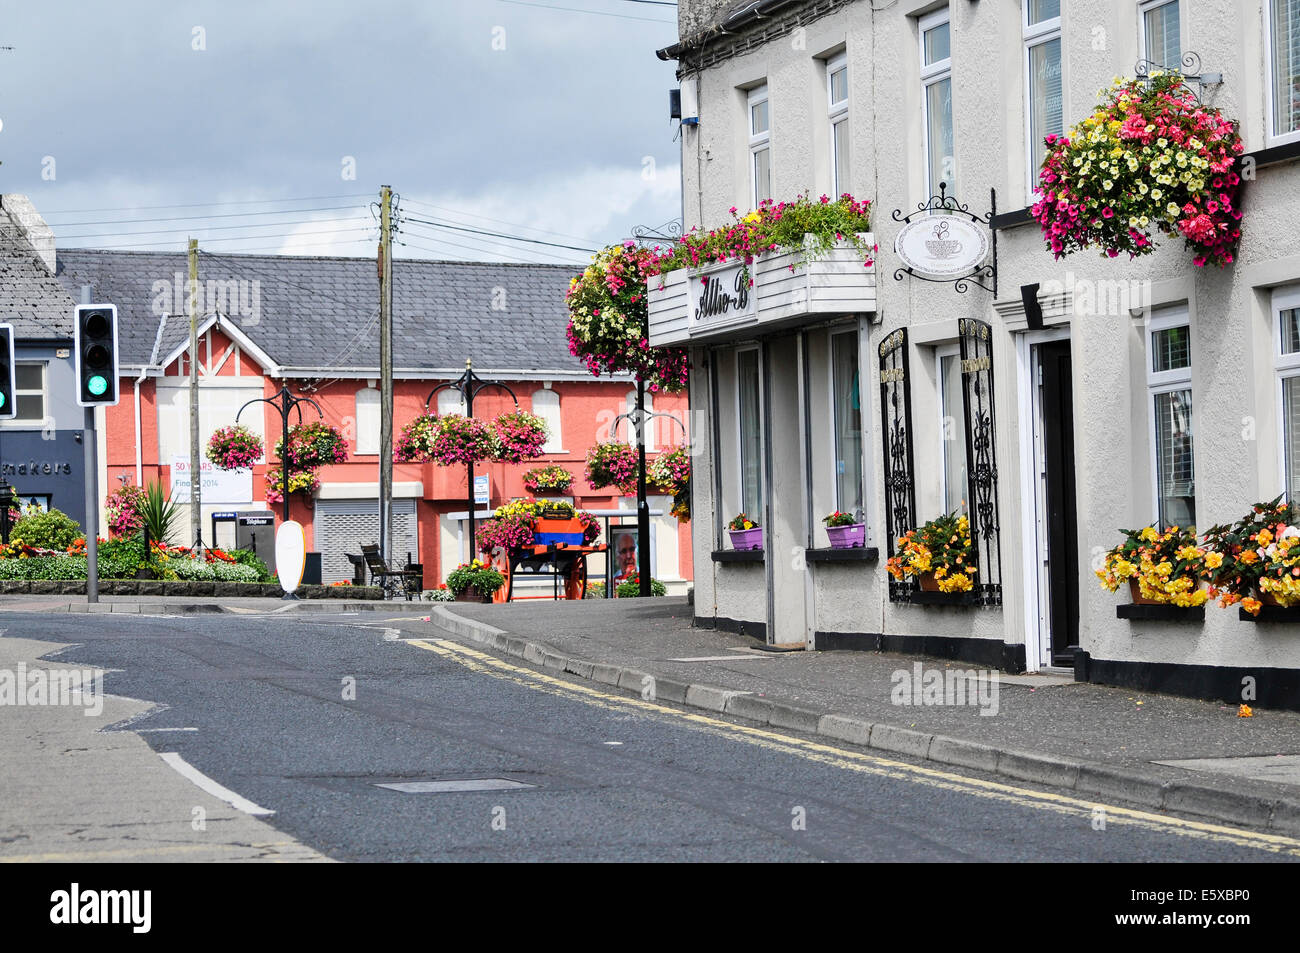 Ballymena, Northern Ireland. 7th Aug 2014 - Village of Ahoghill with lots of floral displays Credit:  Stephen Barnes/Alamy - Stock Image